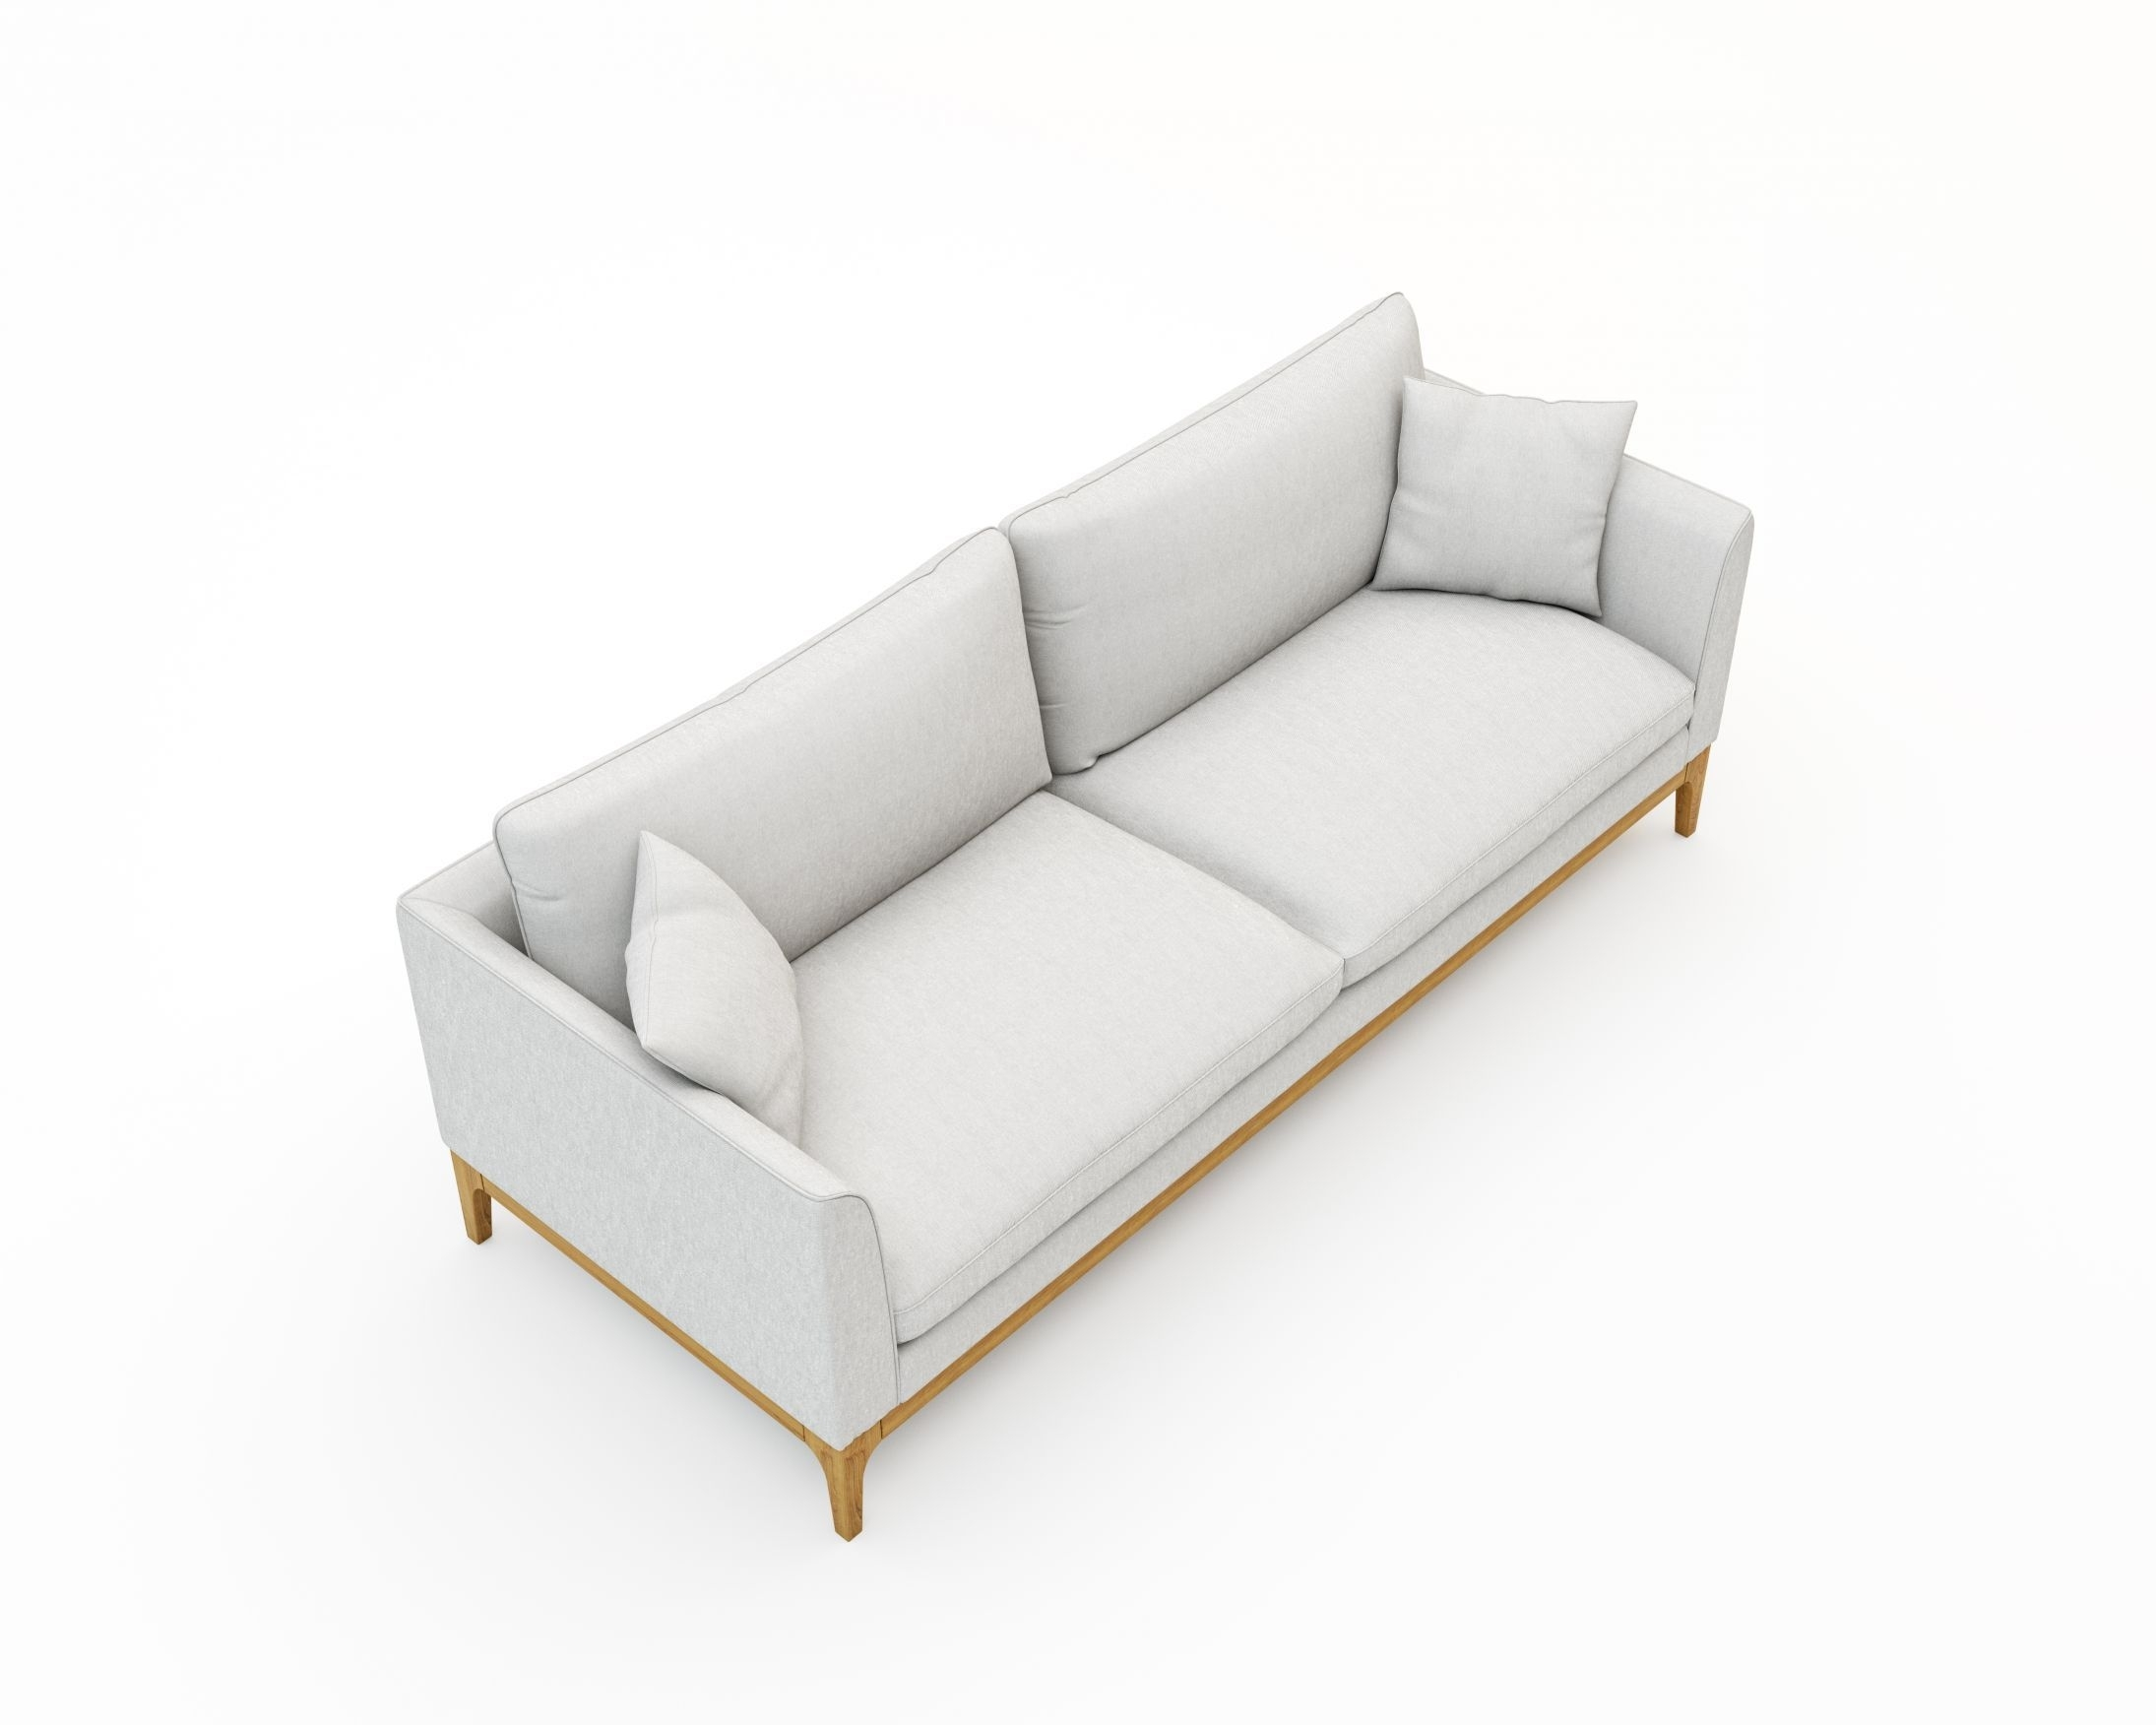 Loren Sofa | Rove Concepts Kure Mid-Century Furniture | Pinterest intended for Nico Grey Sectionals With Left Facing Storage Chaise (Image 11 of 30)